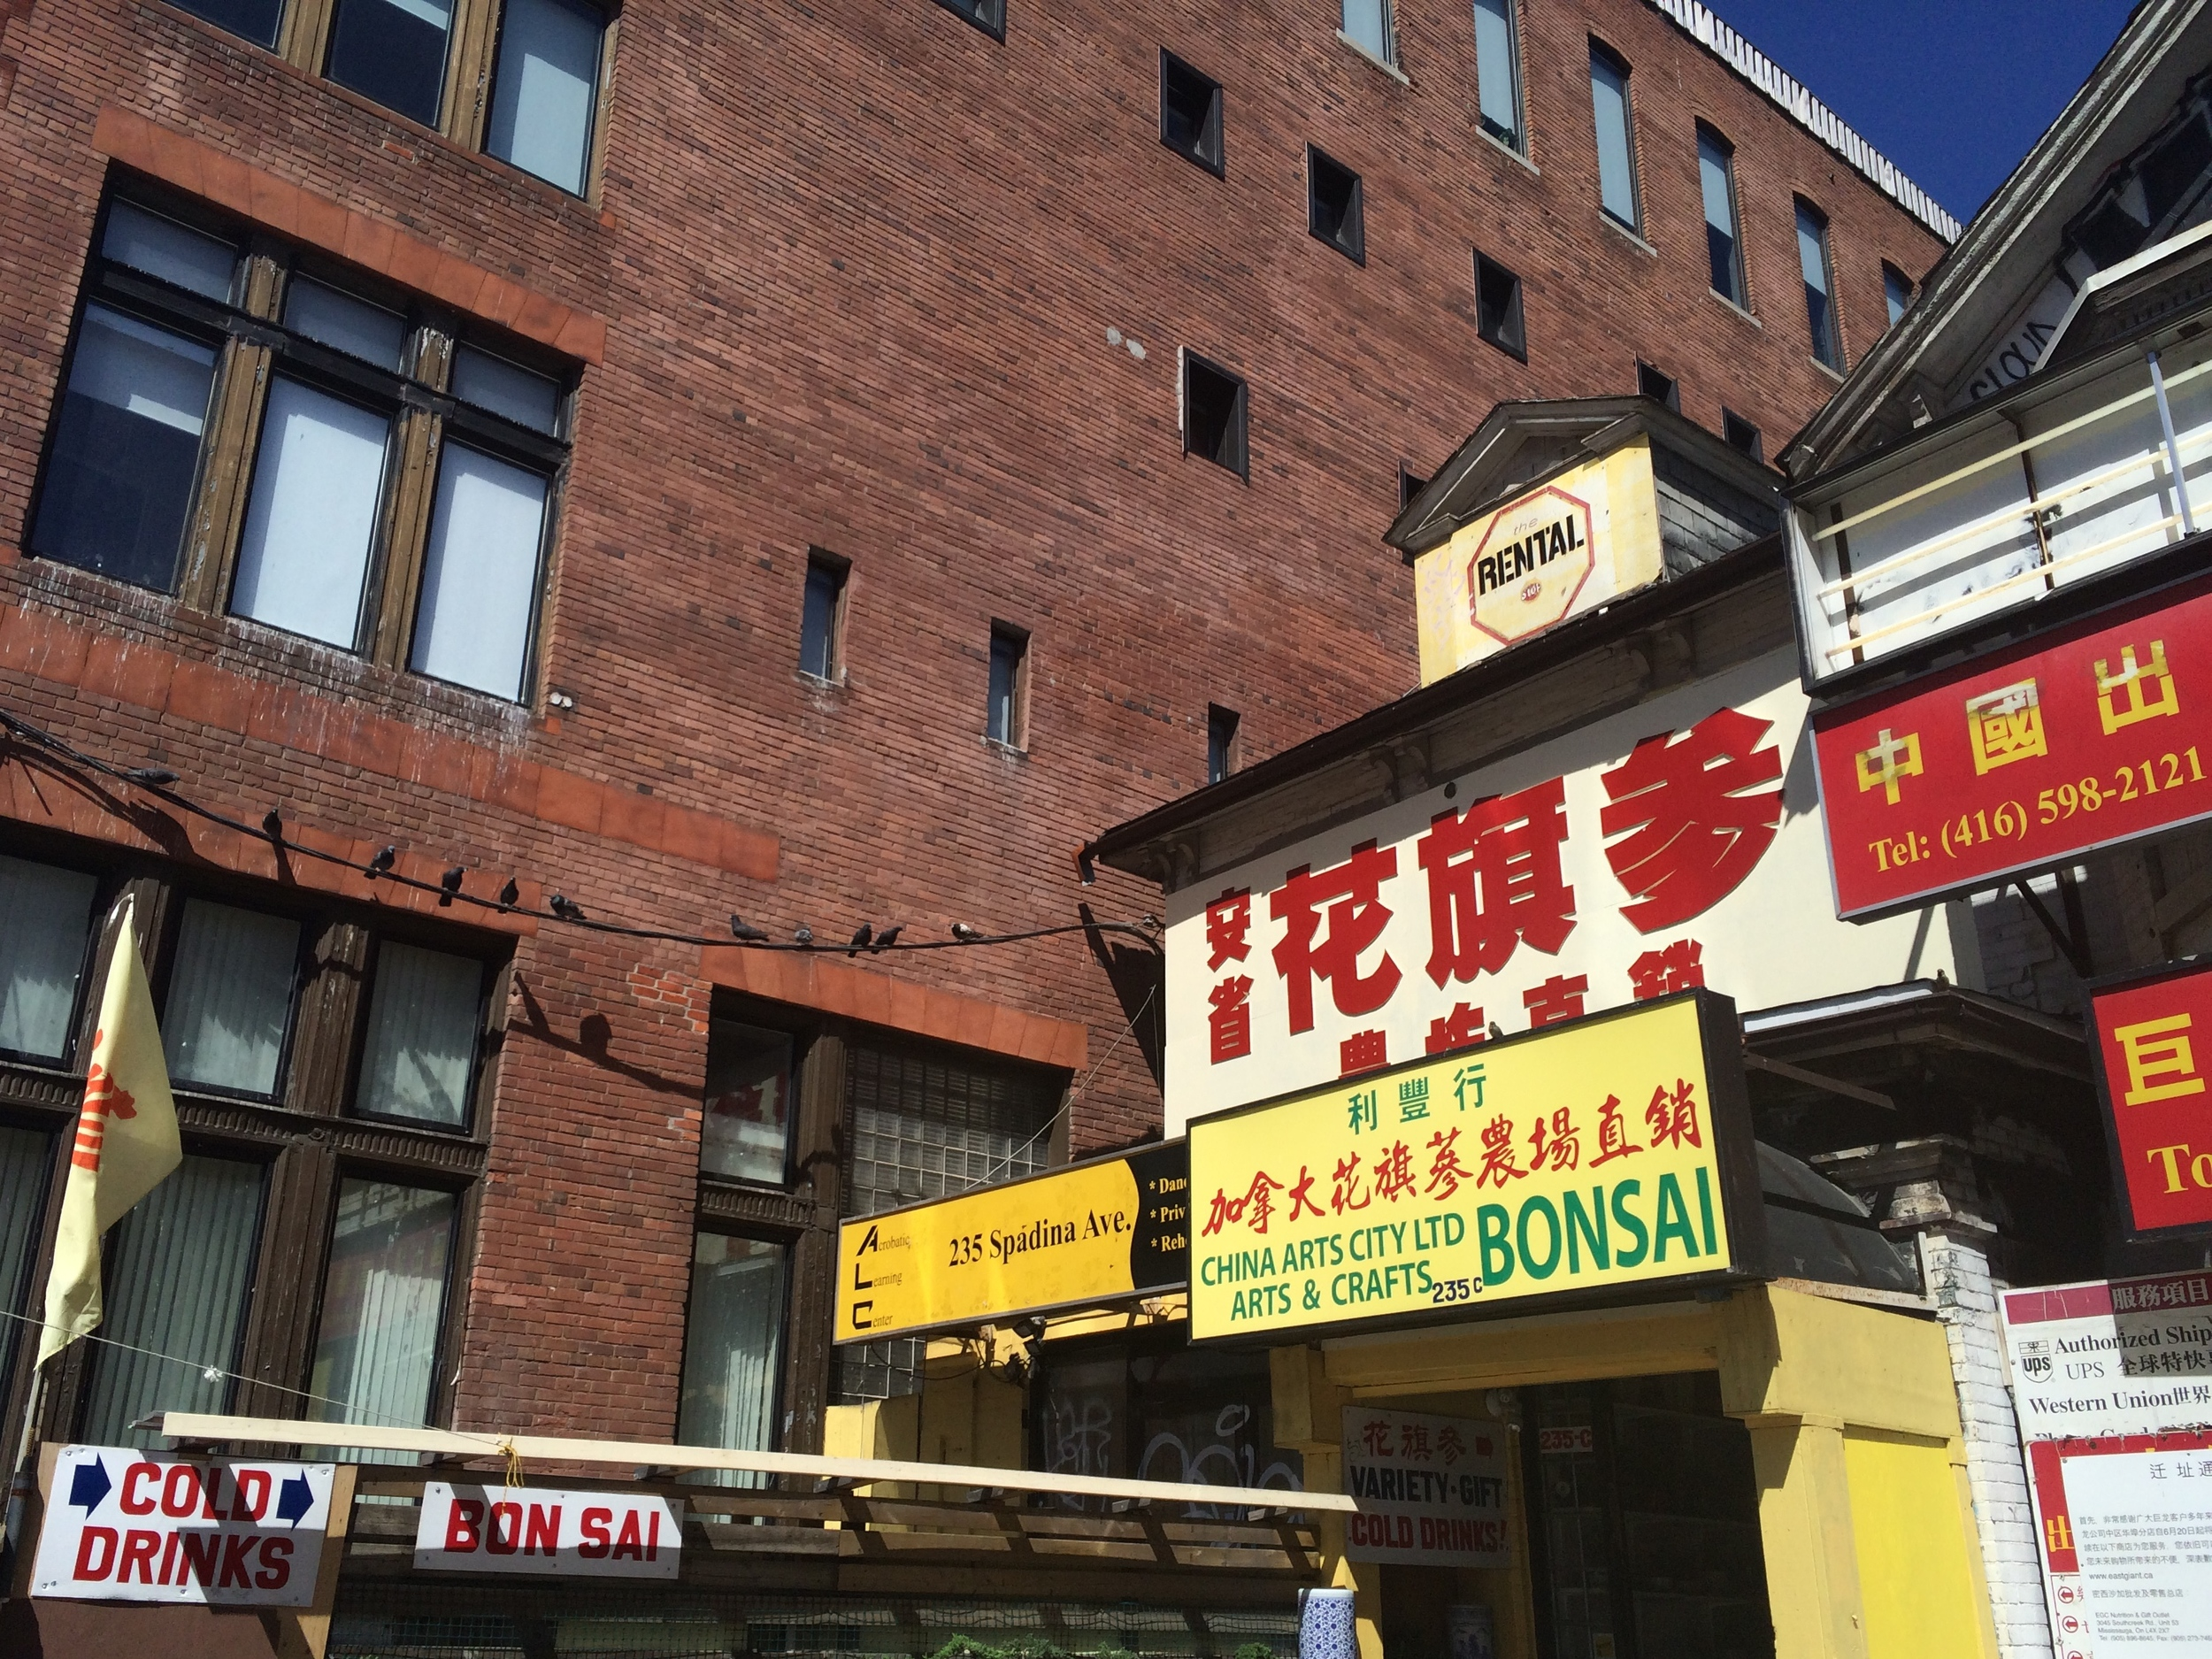 8-11 is in Toronto's Chinatown.